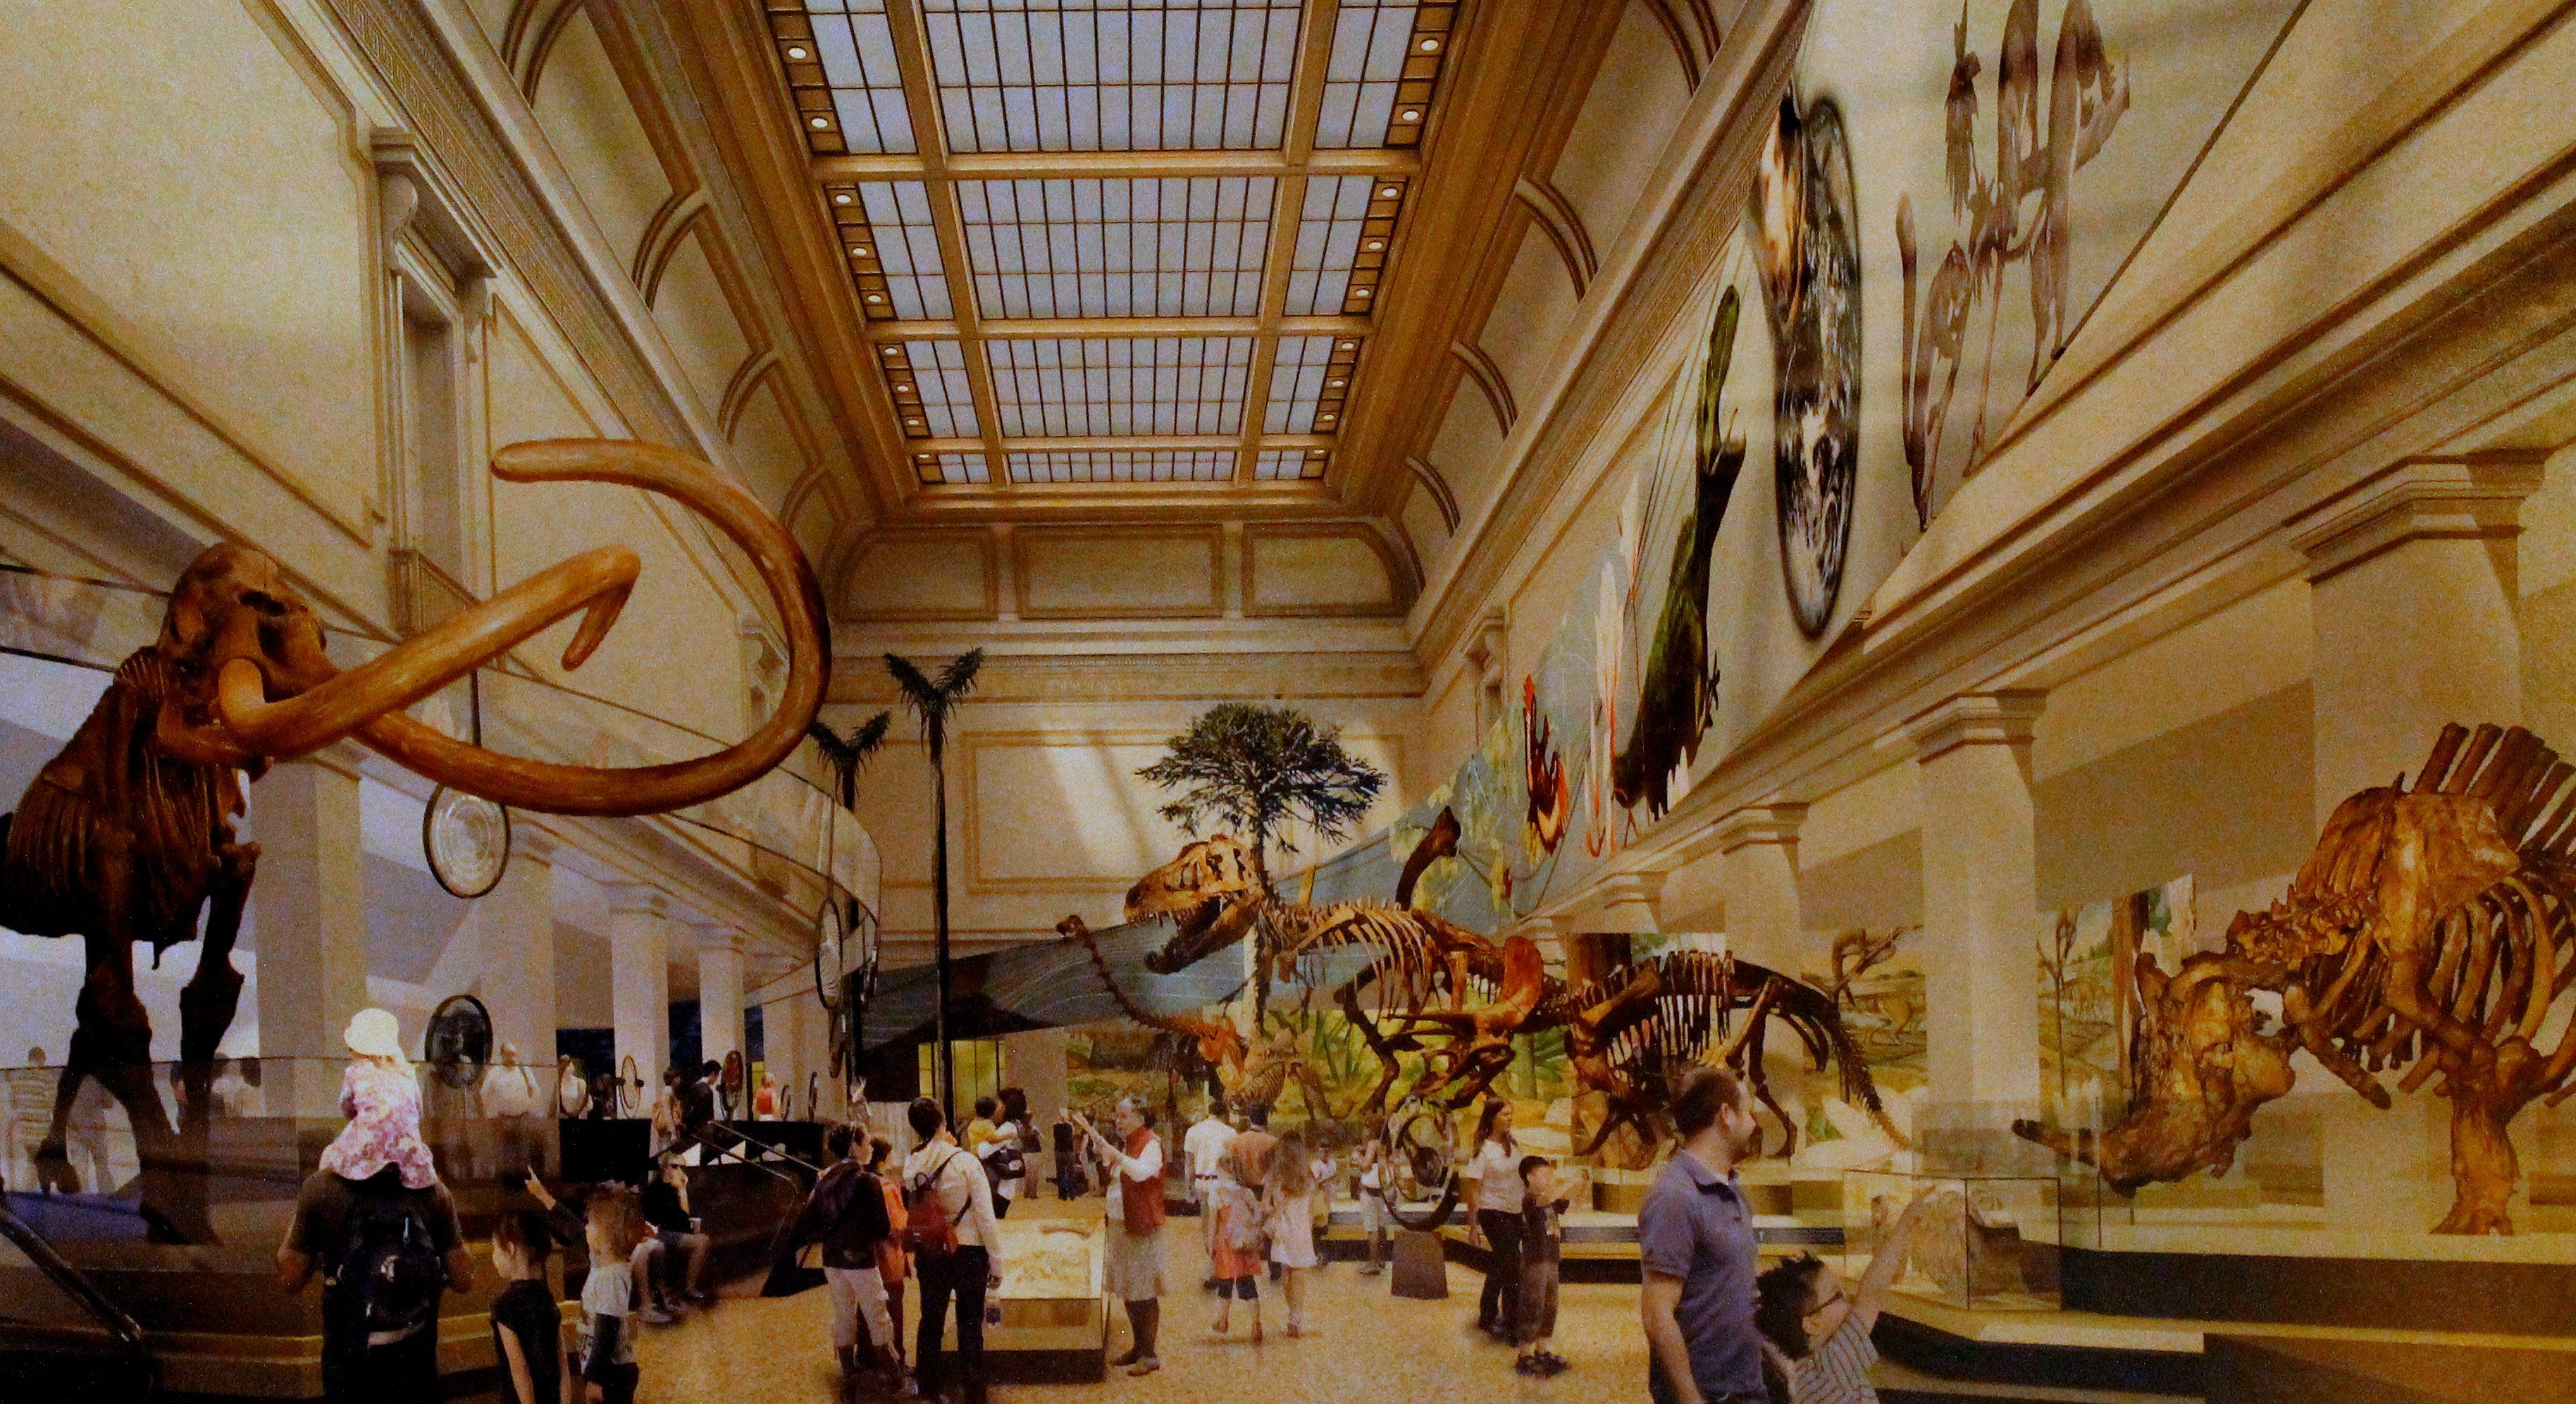 Home To More Than 35 Million Specimens And Artifacts From The Span Of An Estimated 4 5 Billion Years Of Los Angeles Vacation Los Angeles County Natural History